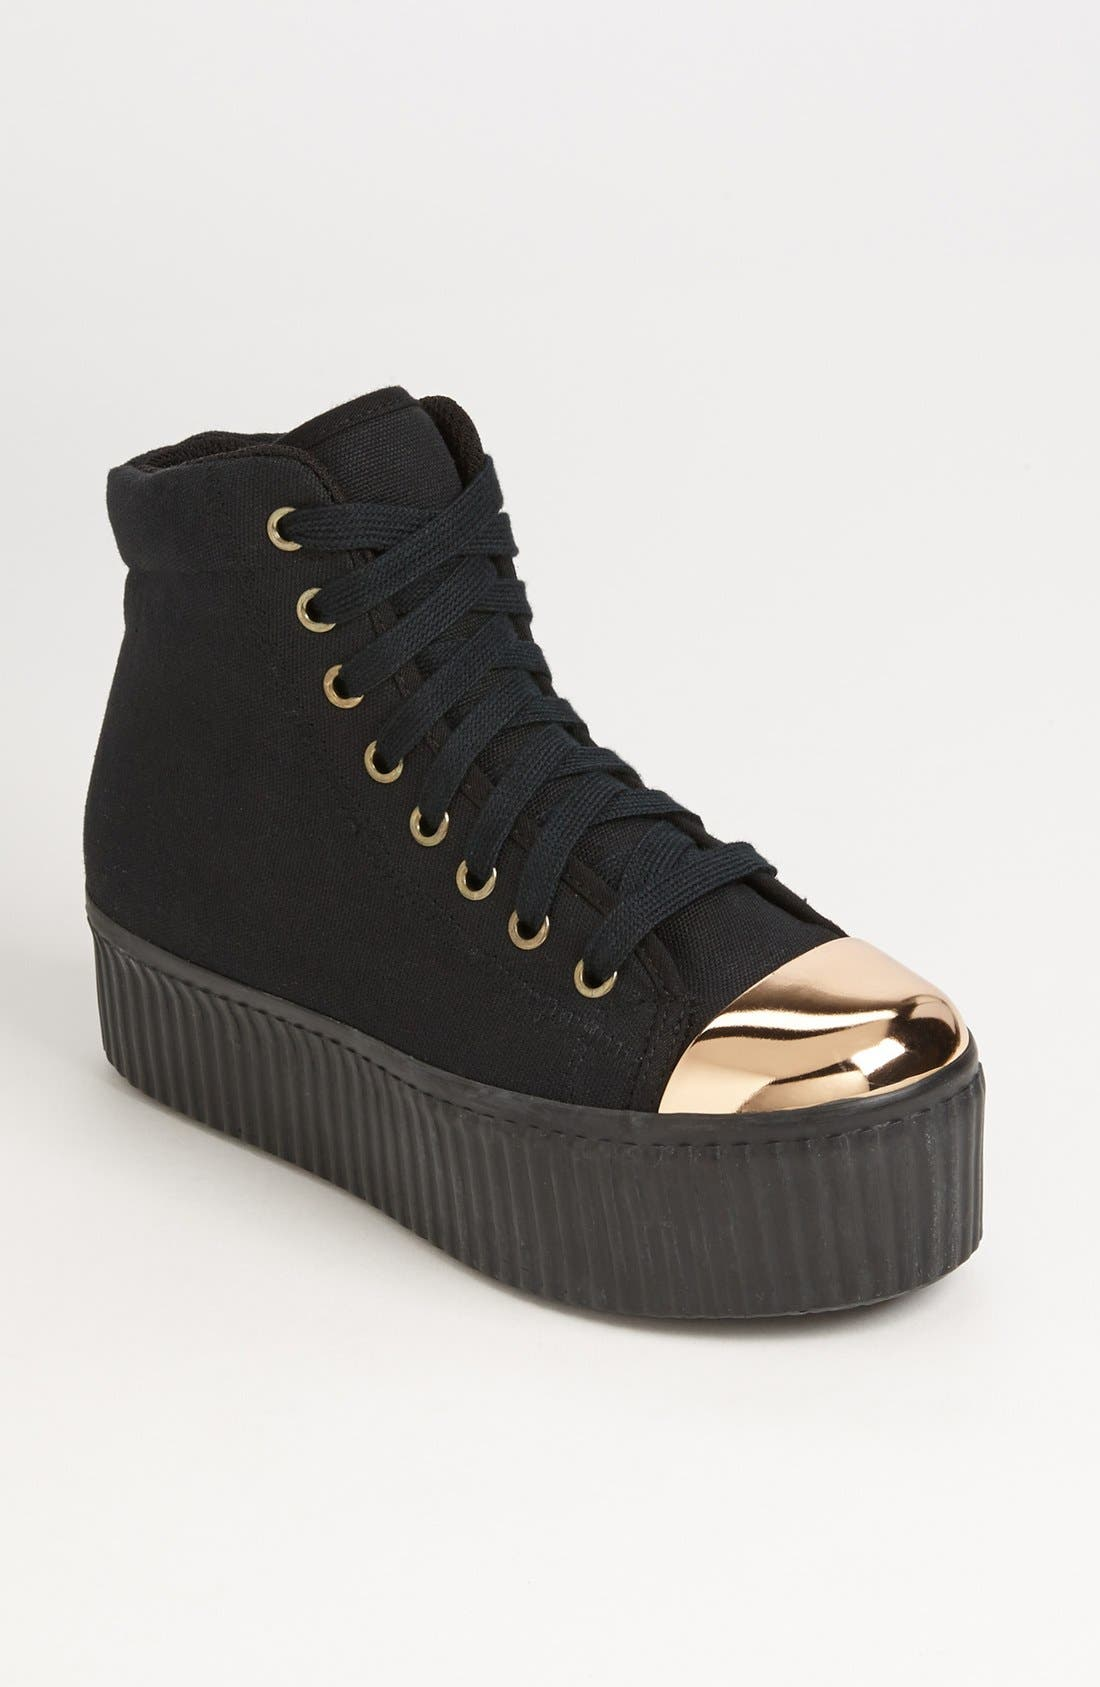 Alternate Image 1 Selected - Jeffrey Campbell 'Hiya' Sneaker